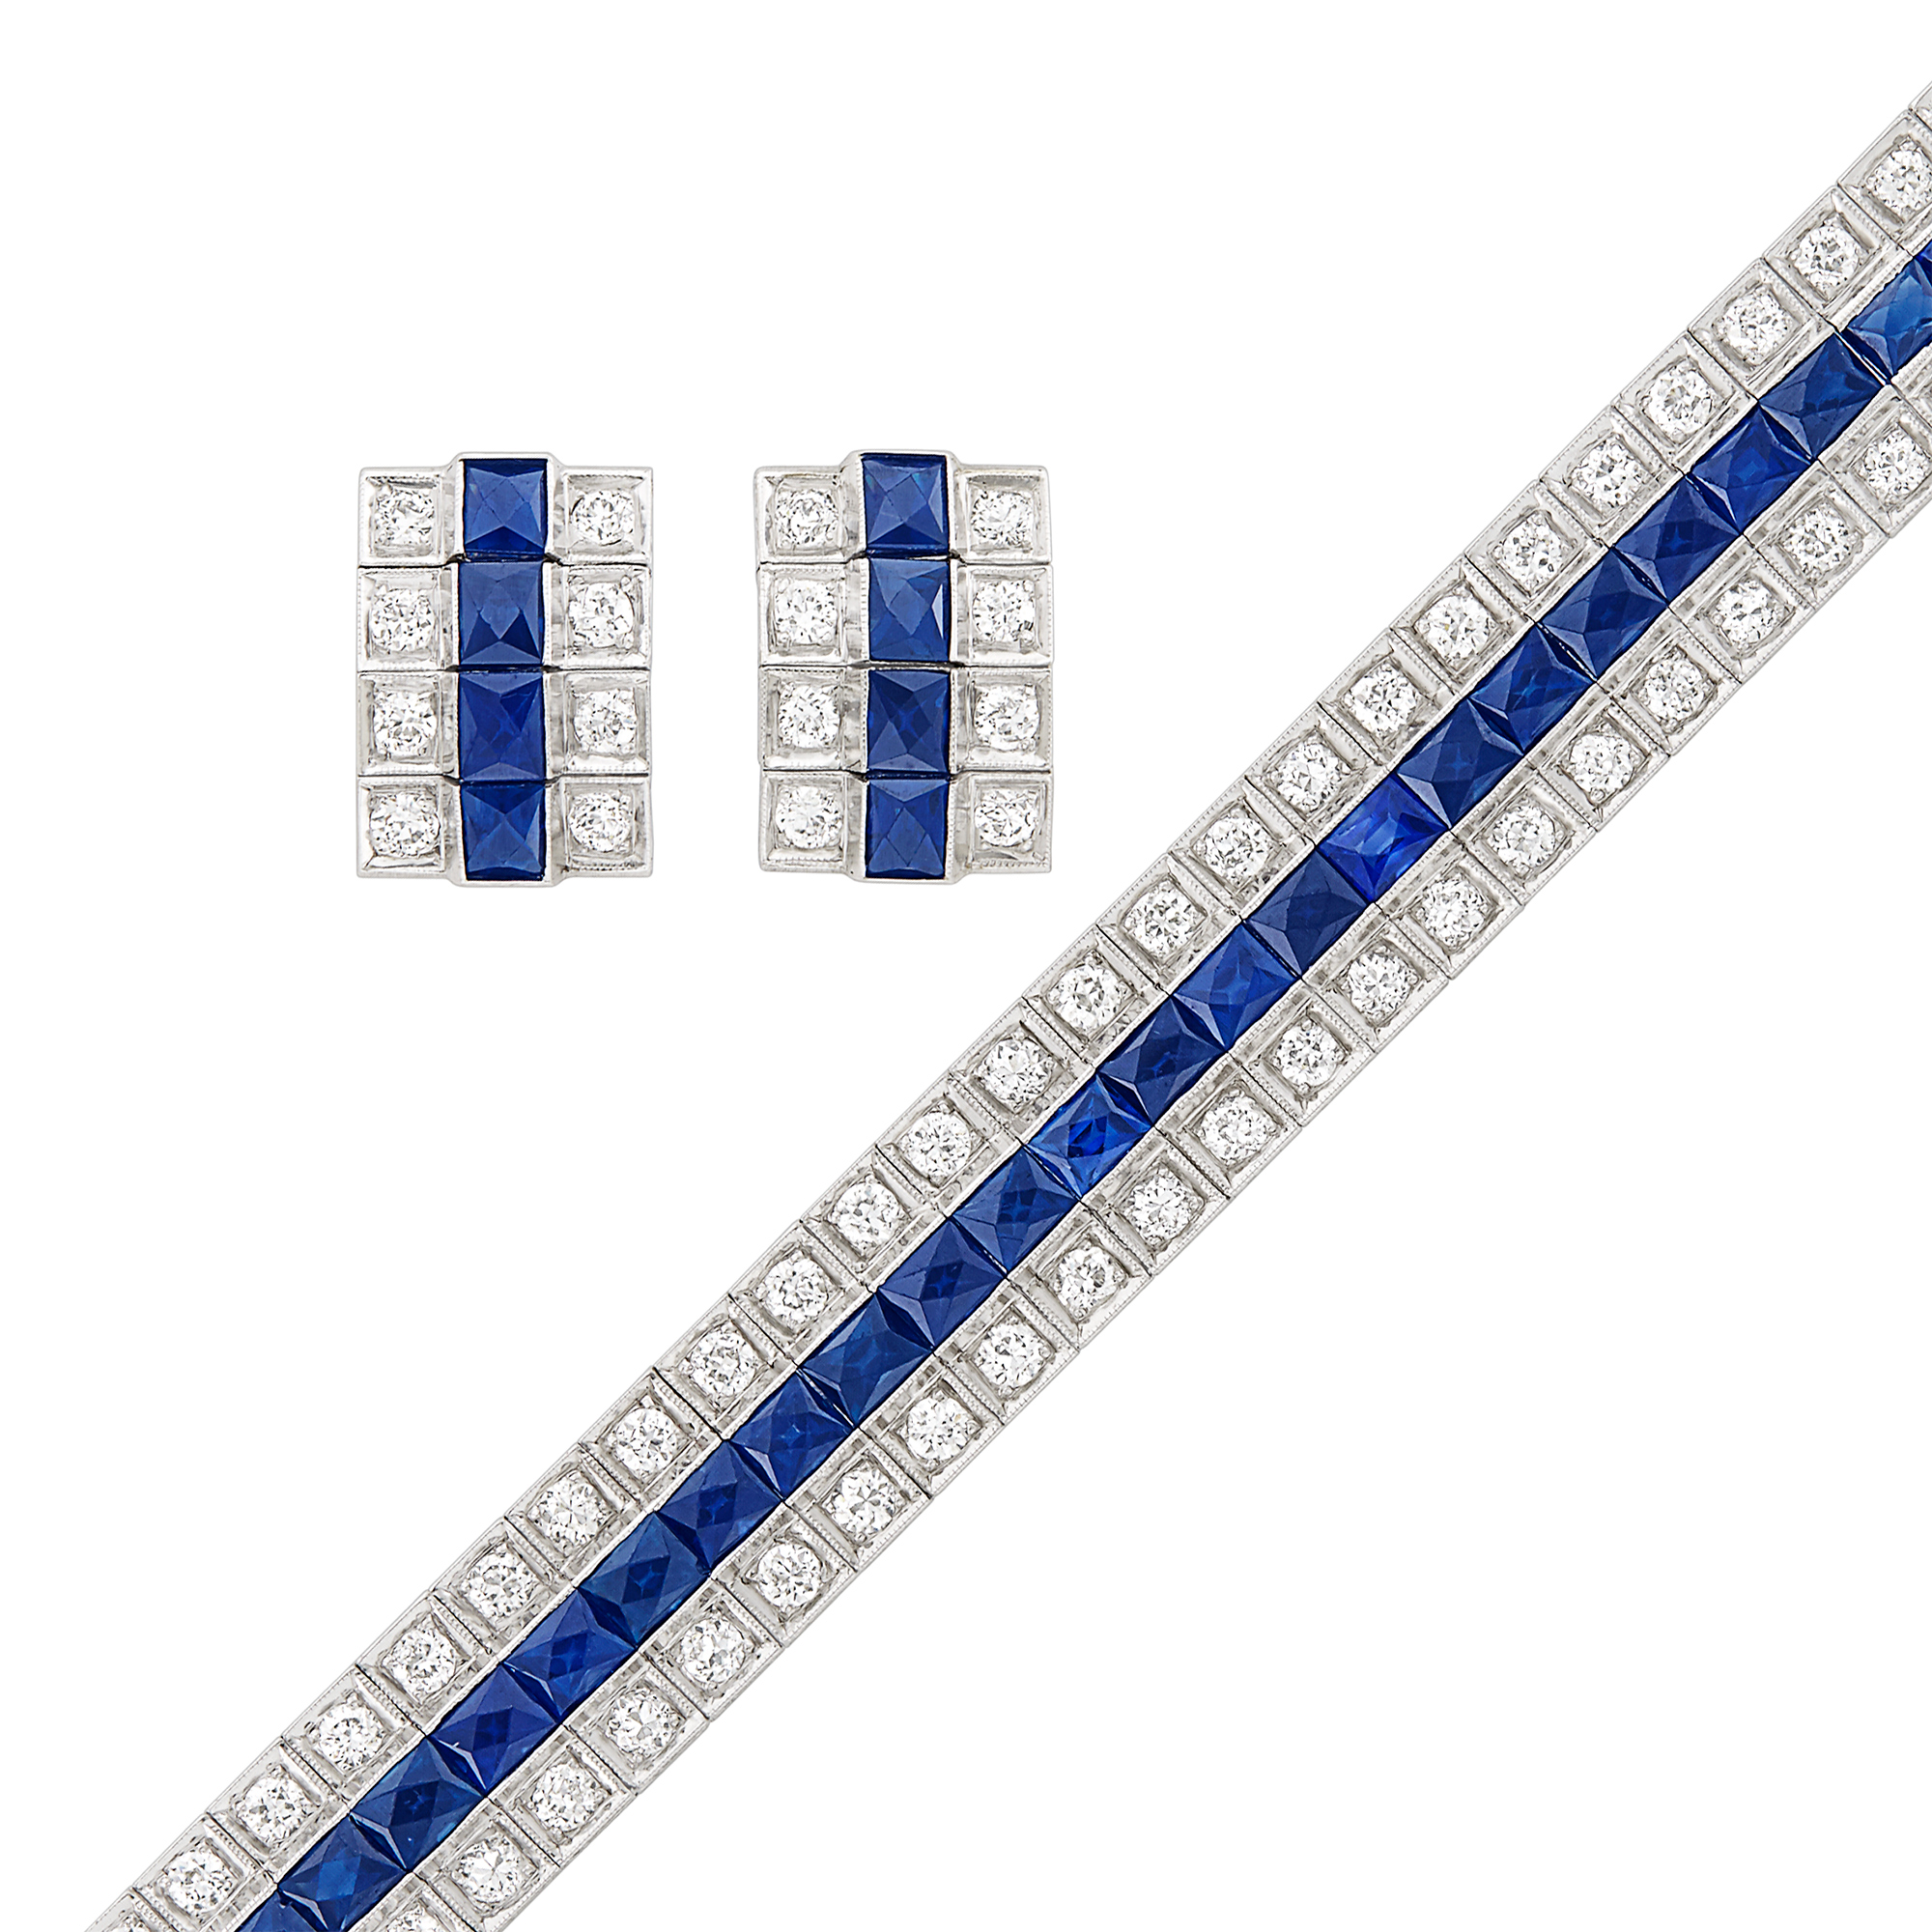 Lot image - Platinum, Diamond and Sapphire Bracelet and Pair of Earclips